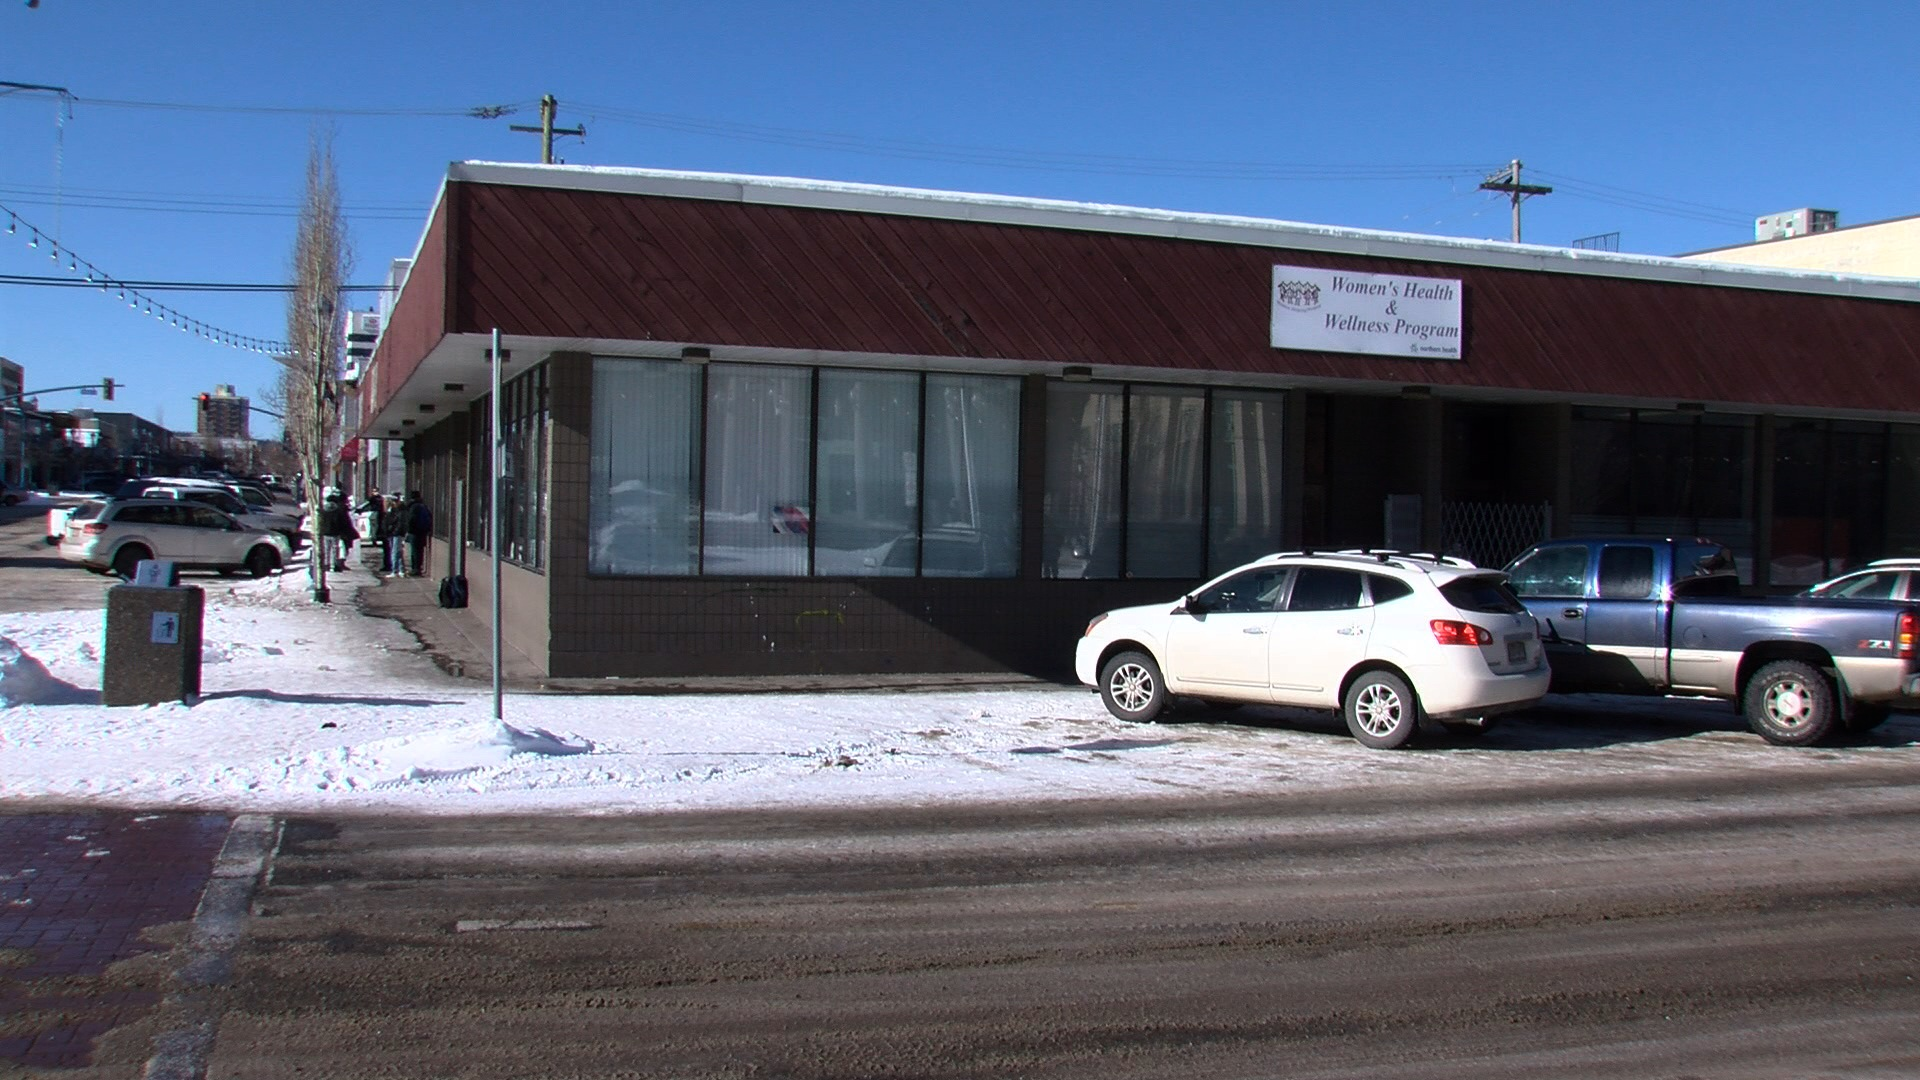 Needle exchange draws criticism from downtown business